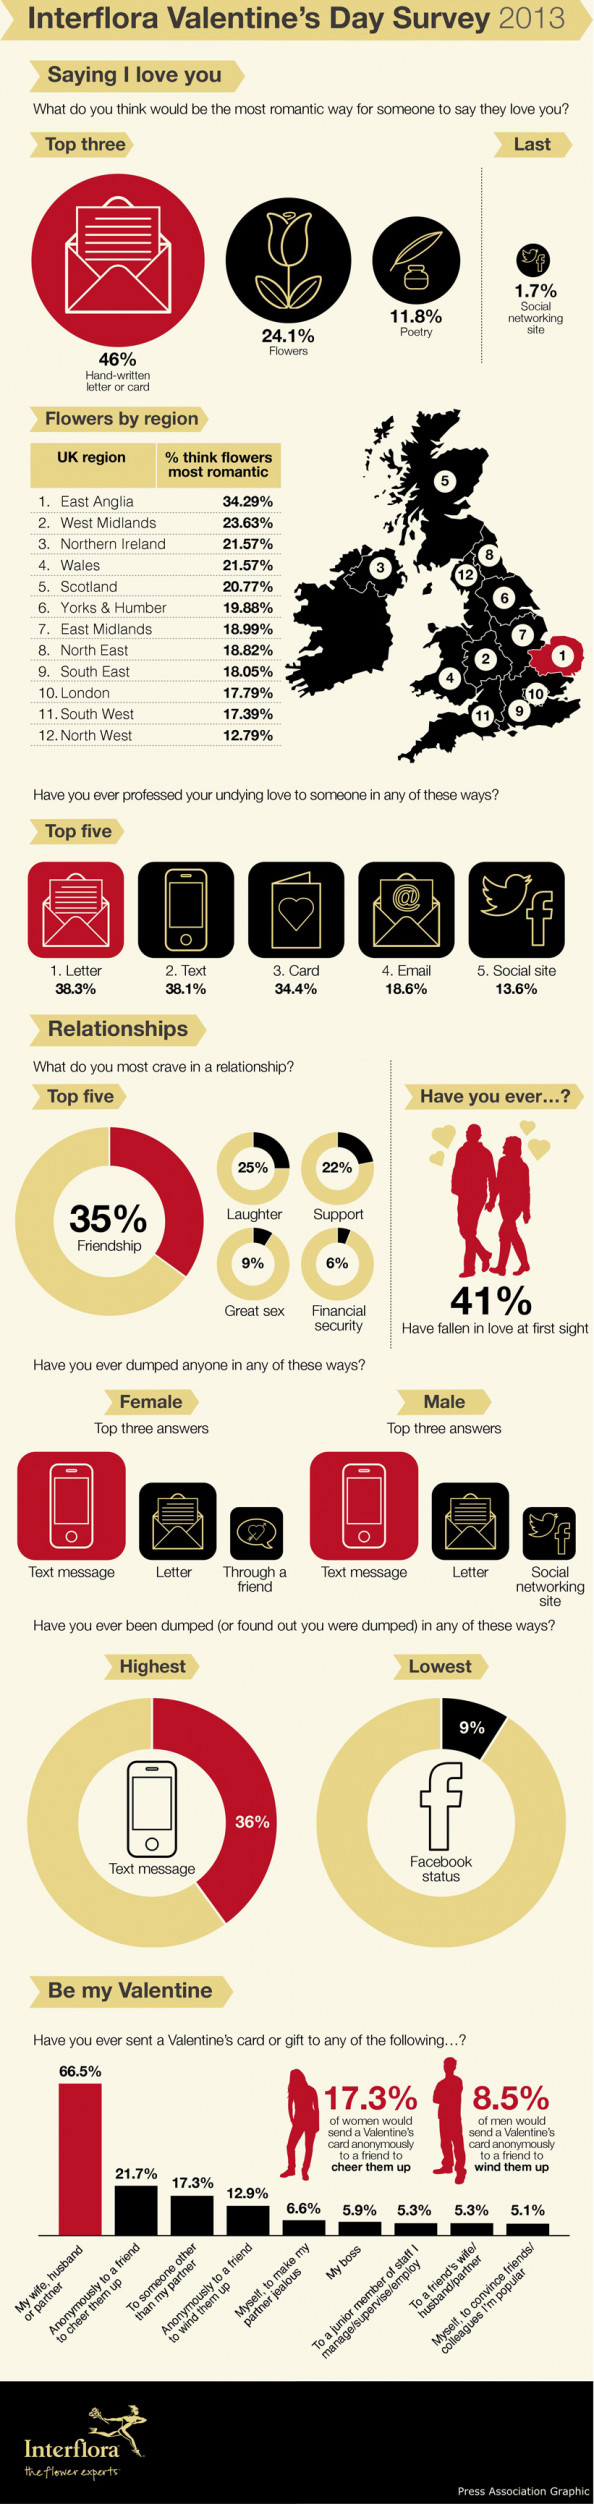 Interflora Valentine&#039;s Day Survey 2013 Infographic